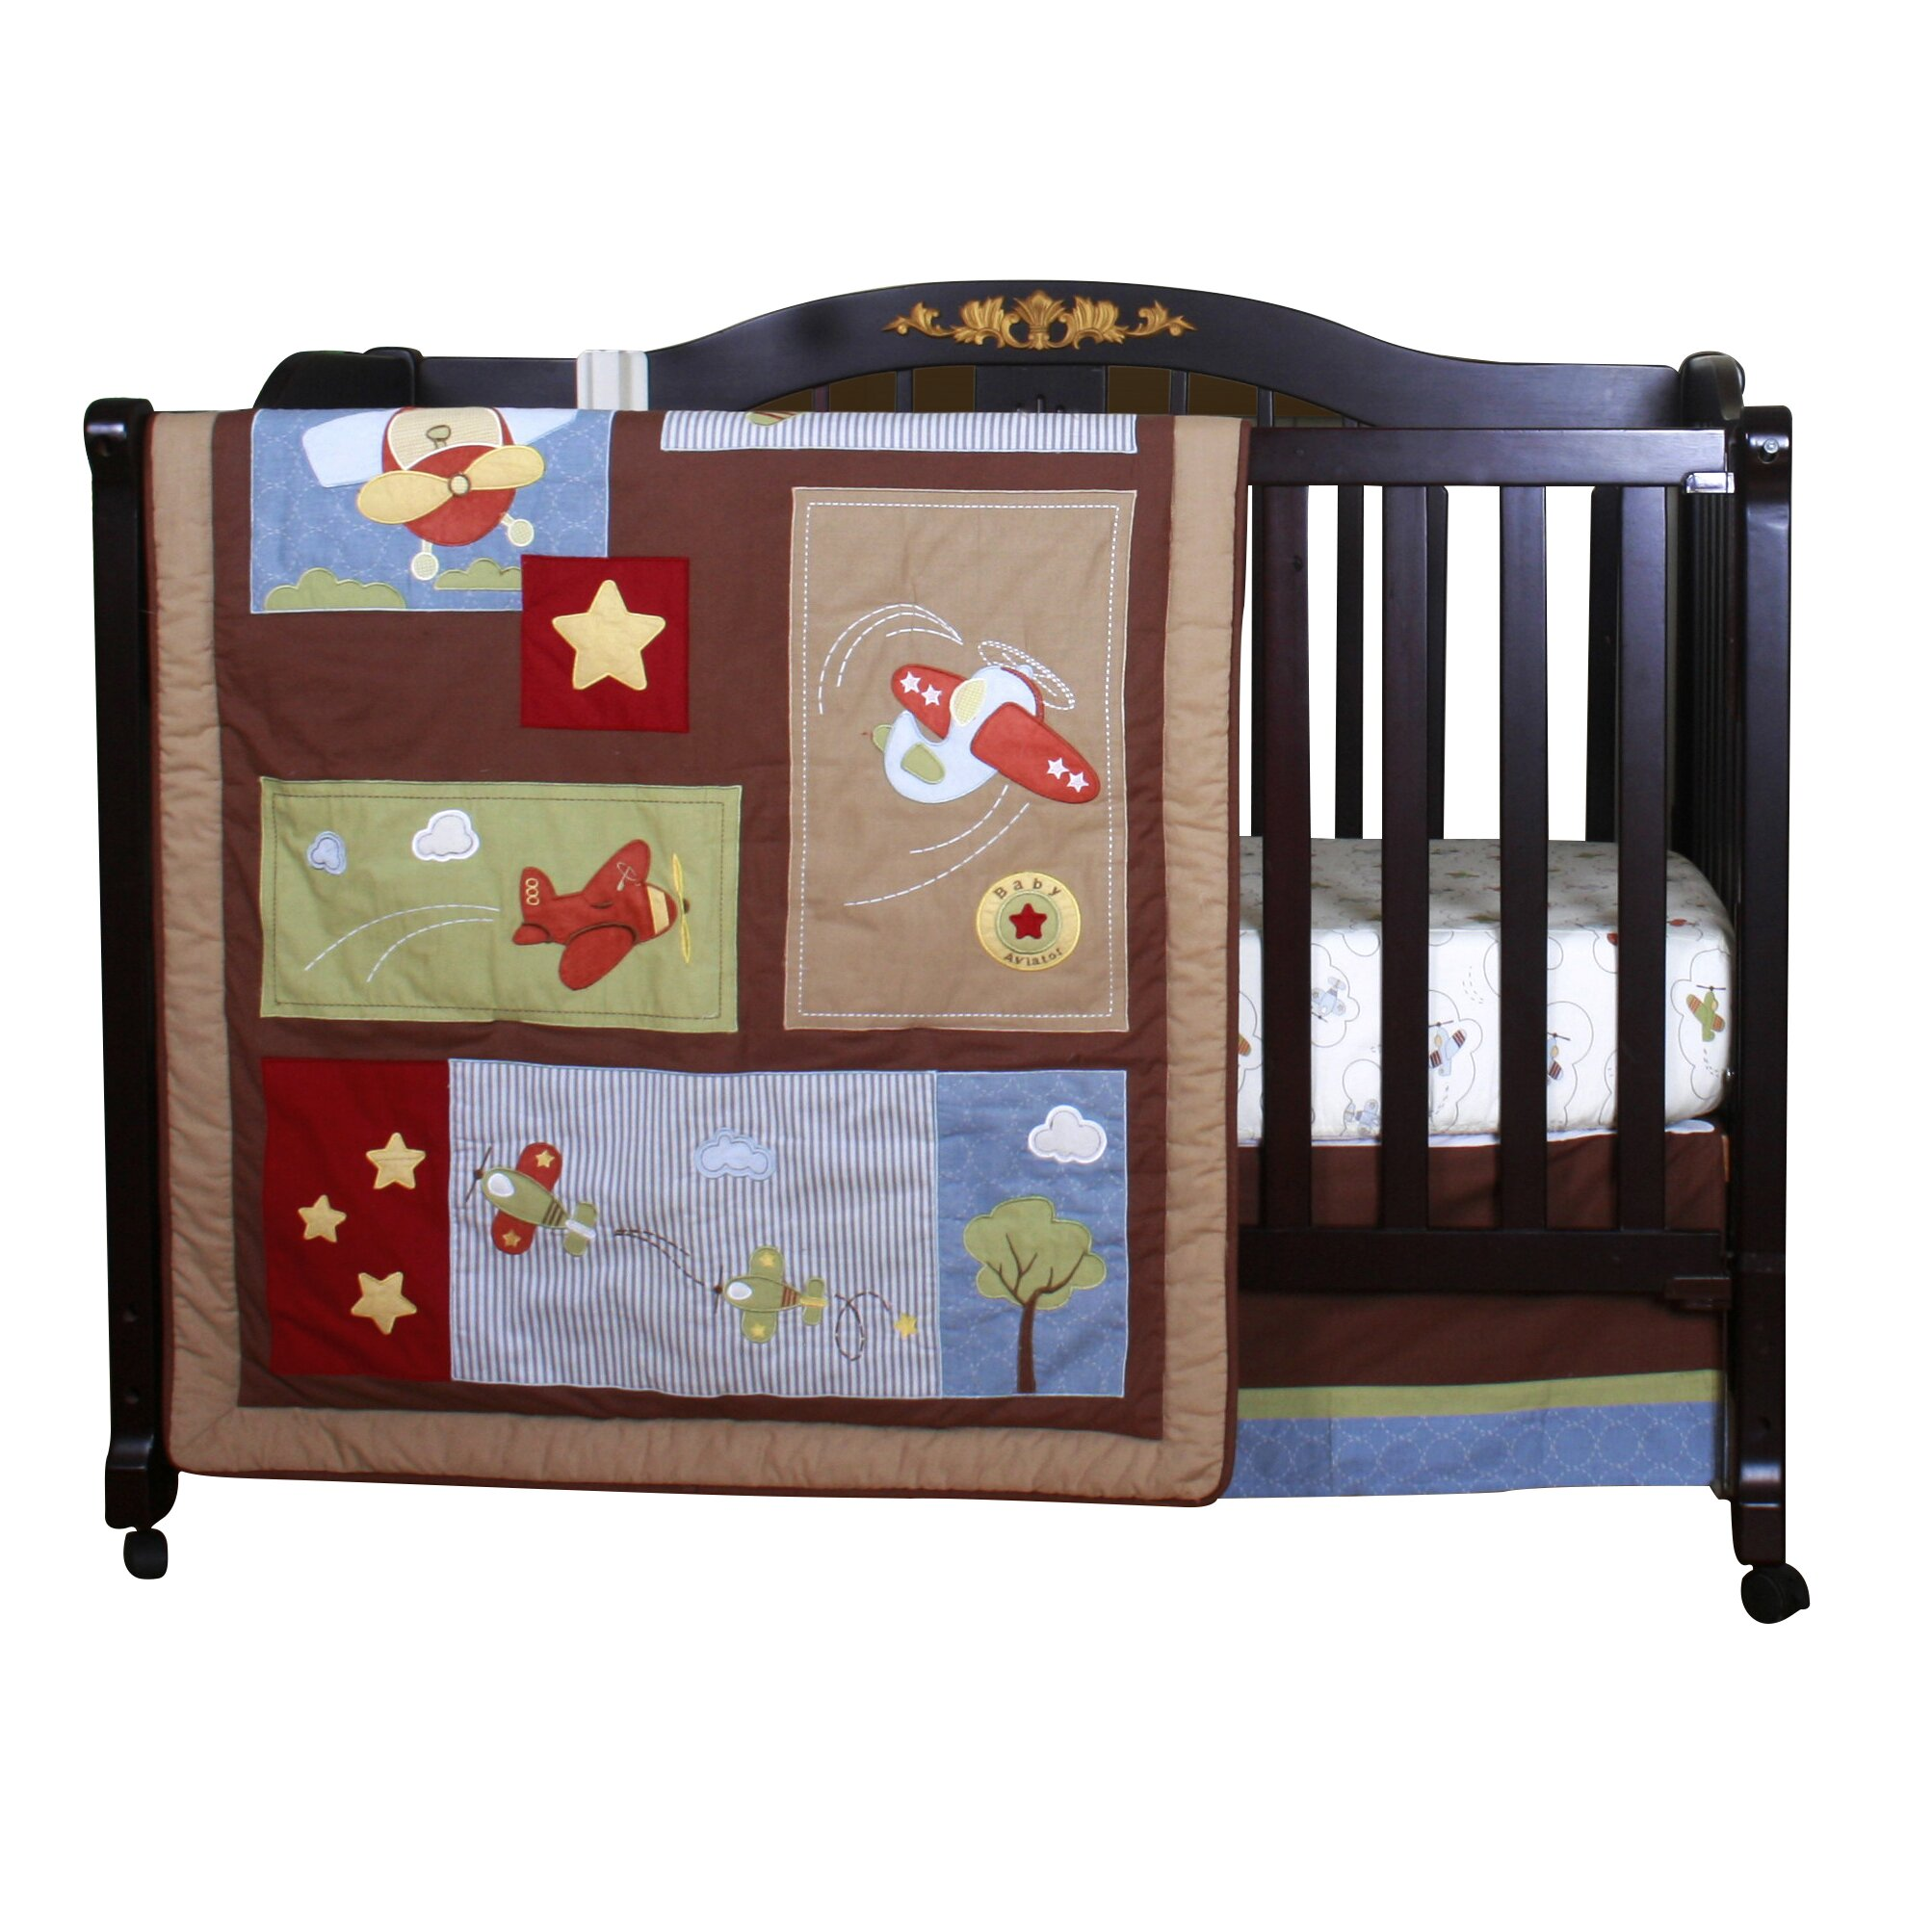 Baby bed for airplane - Geenny Boutique Airplane Aviator 12 Piece Crib Bedding Set